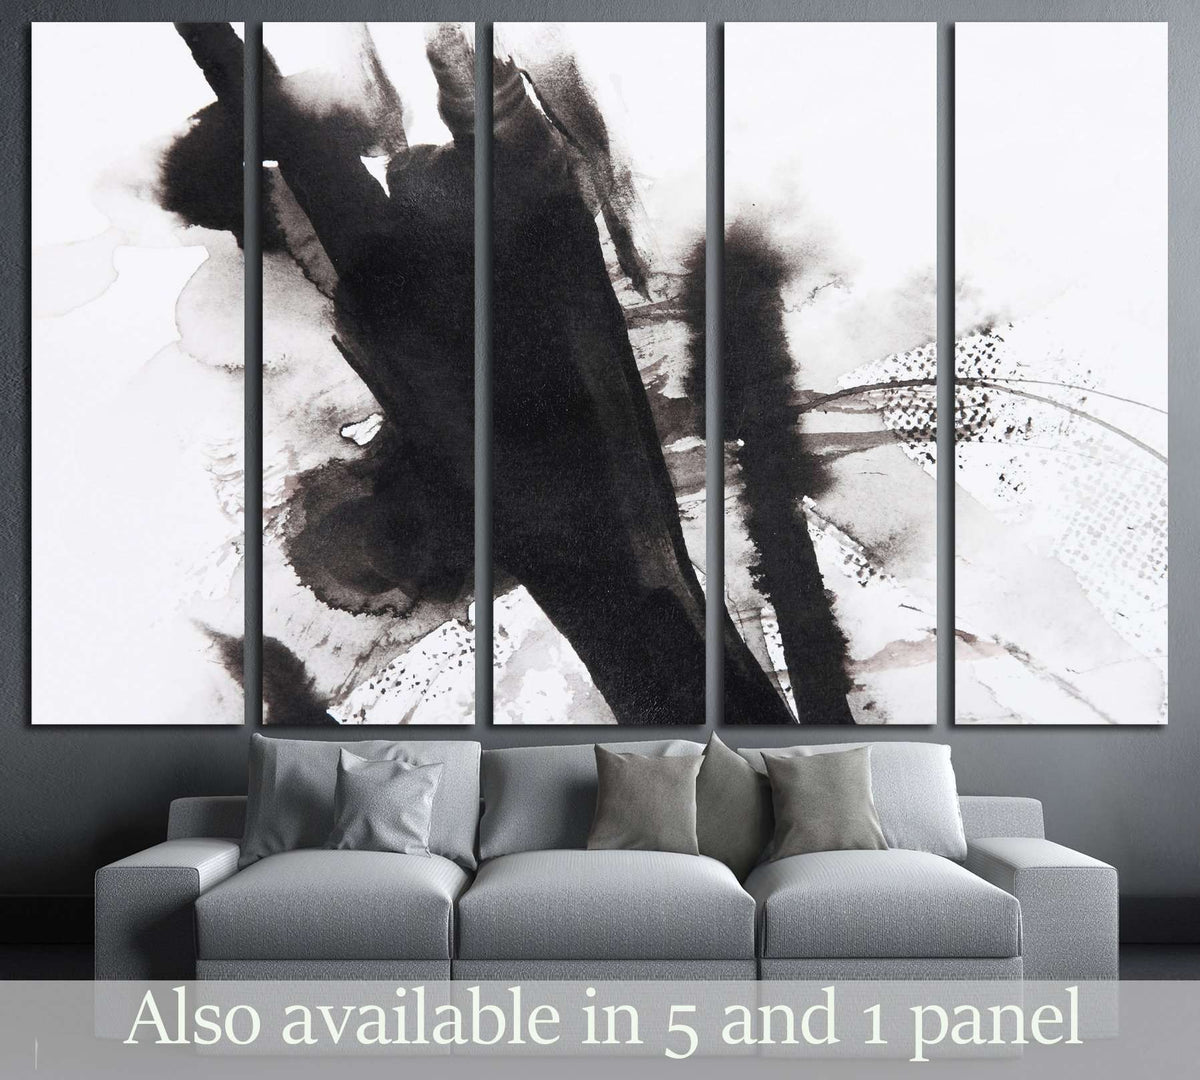 Black And White Abstract Brush Painting №3062 Ready To